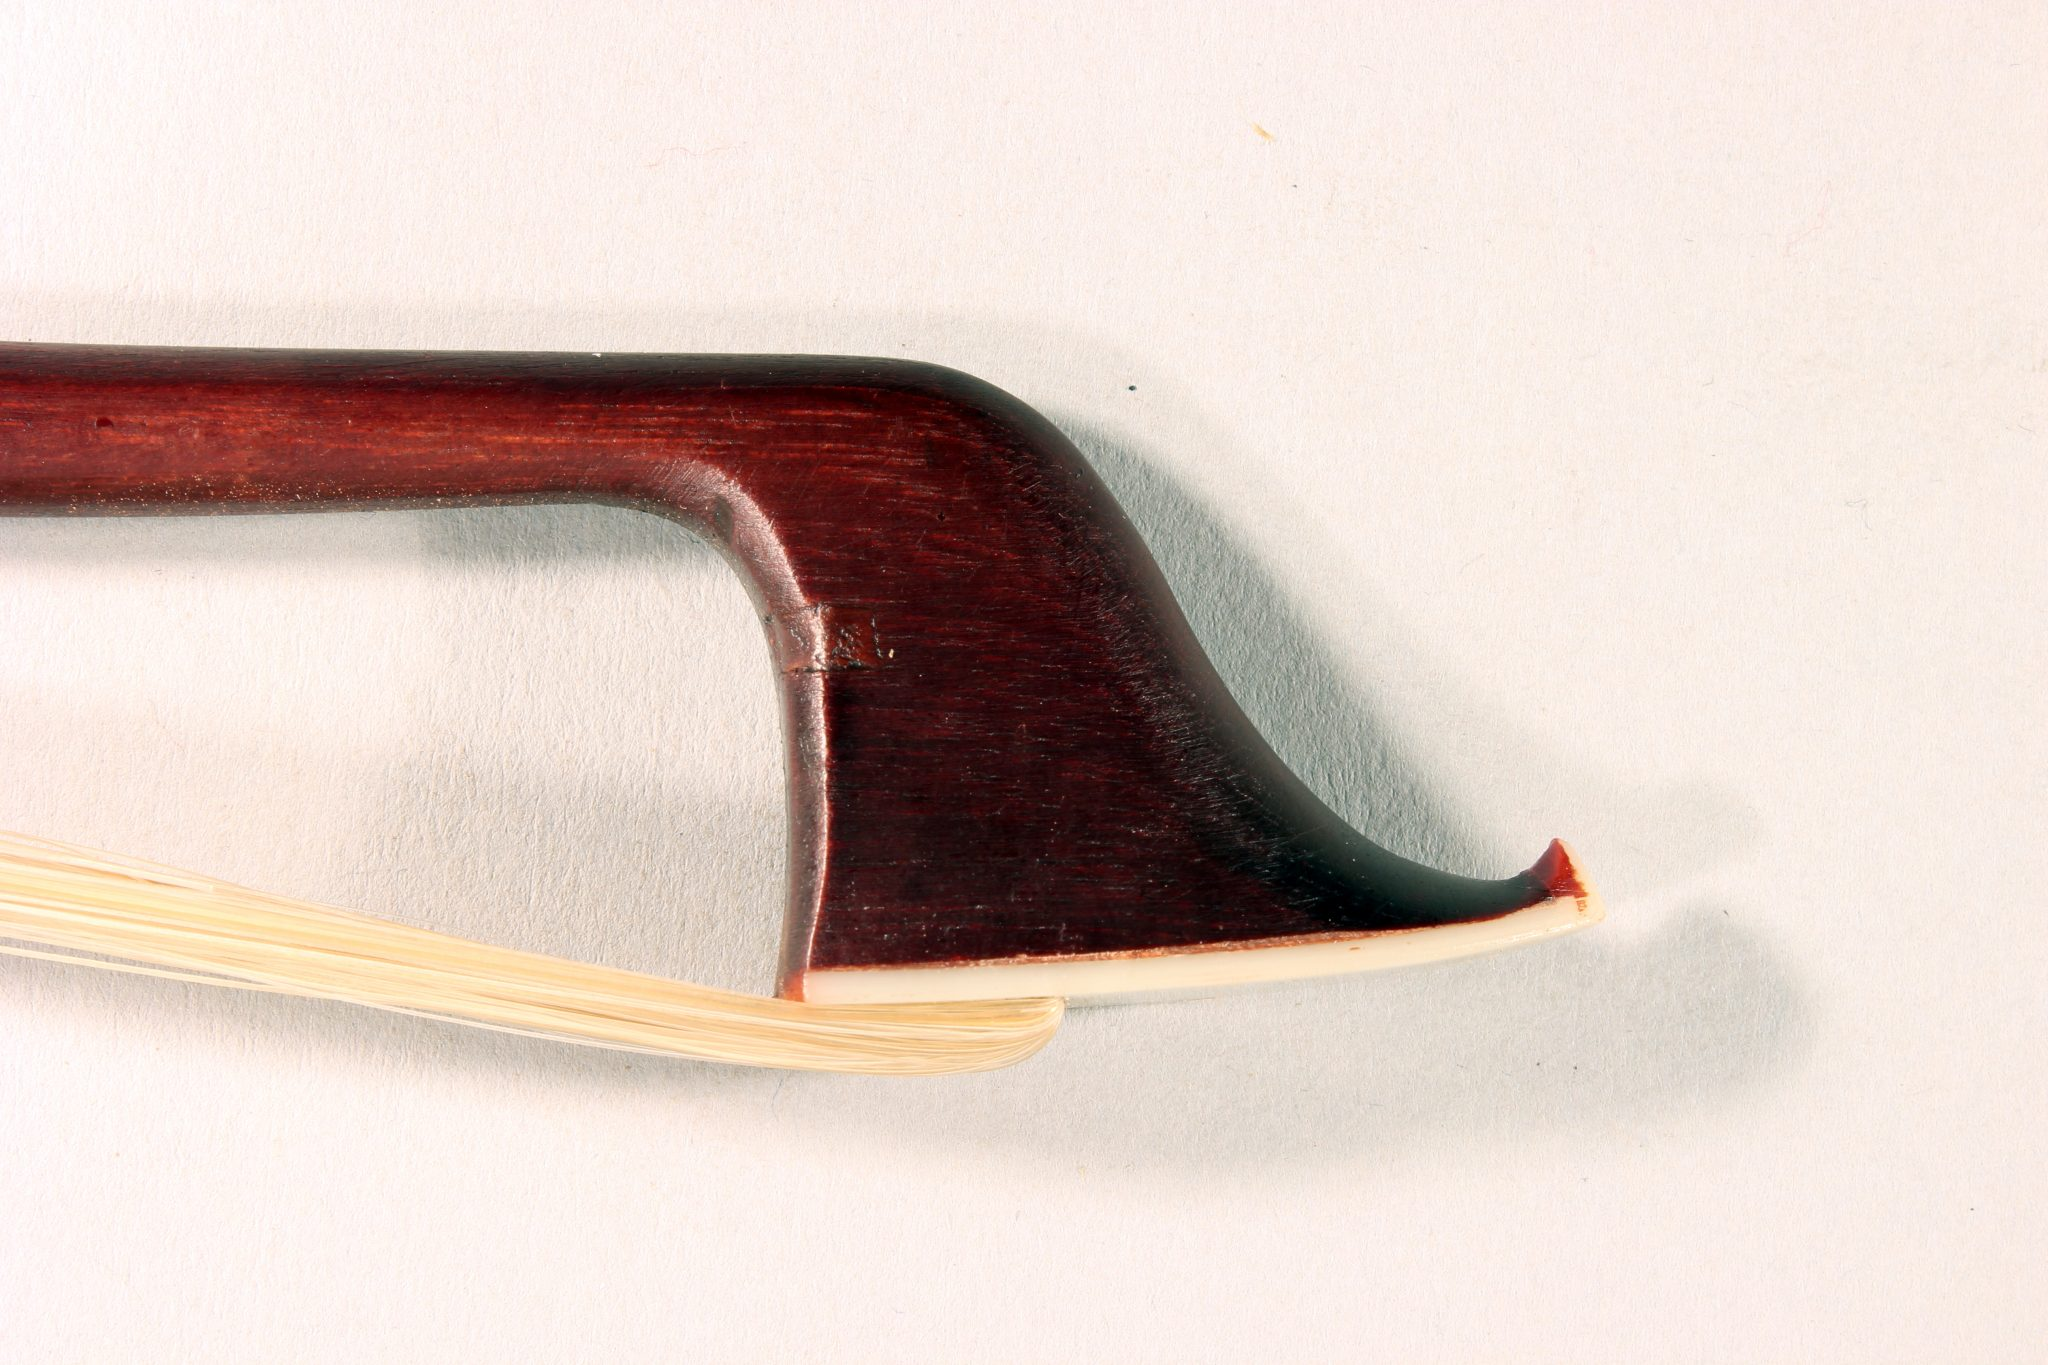 Bass Bow G Werner French Pattern 1/2 Size for sale at Bridgewood and Neitzert London